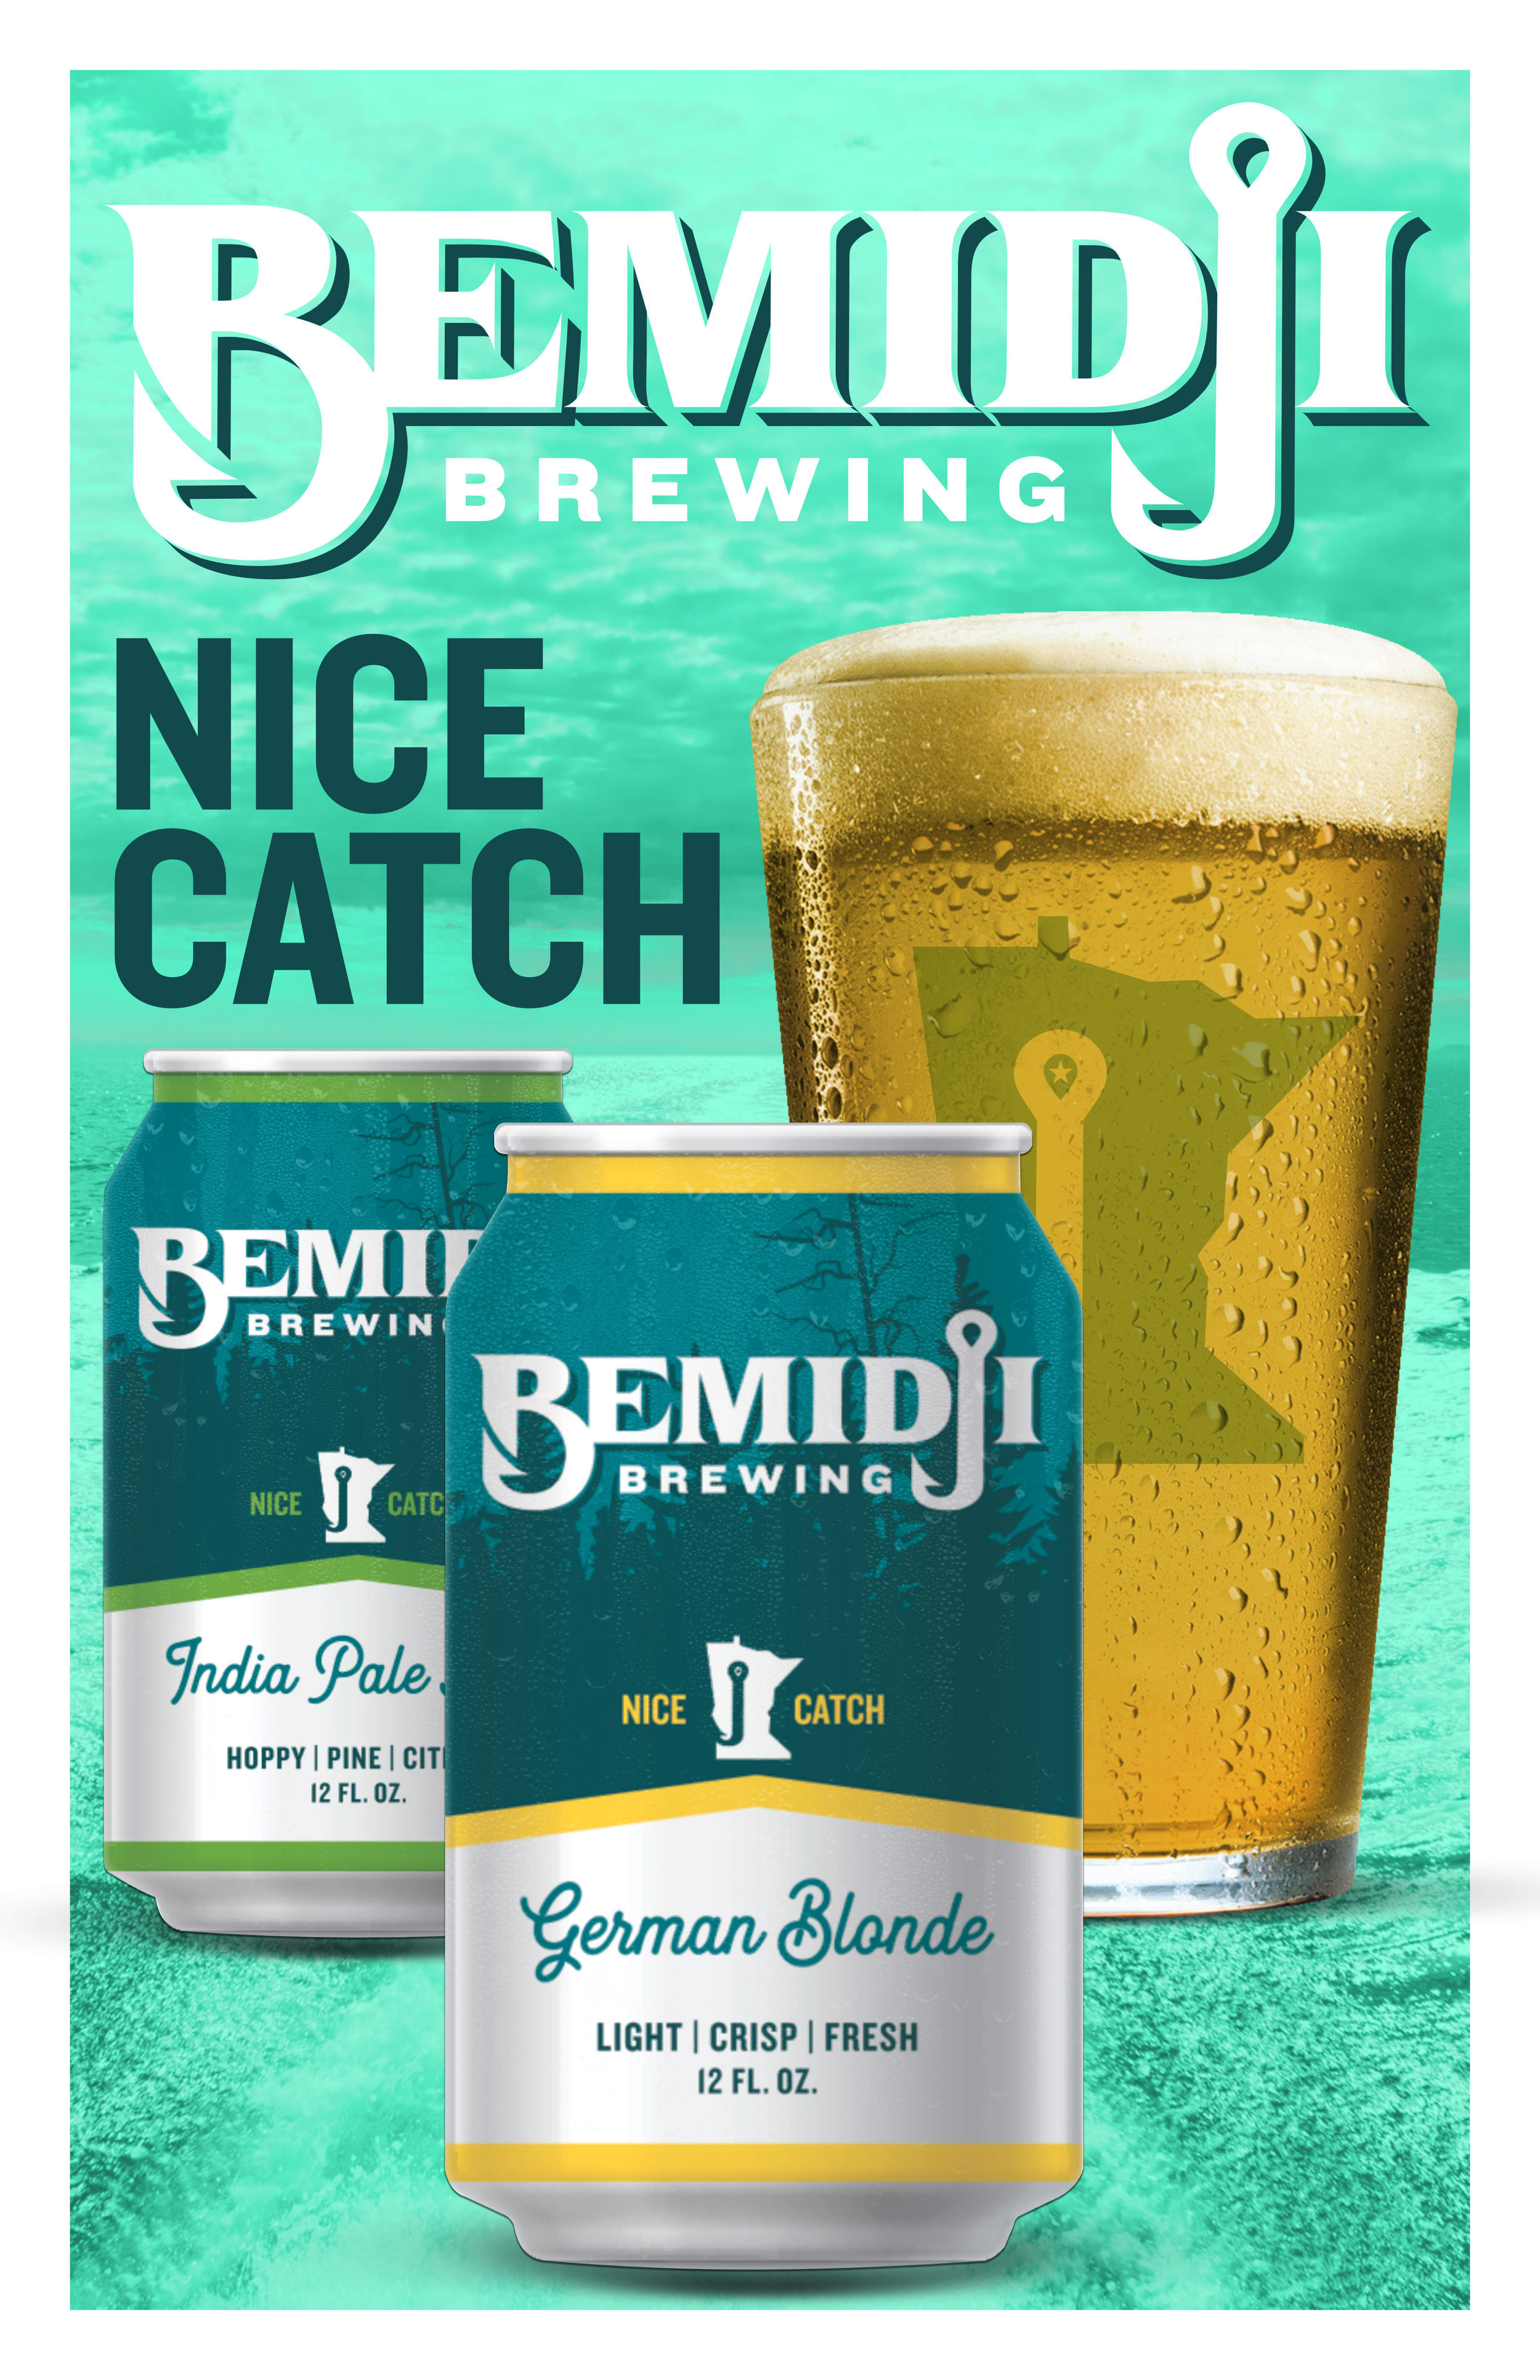 Bemidji Brewing is available on tap and in cans.